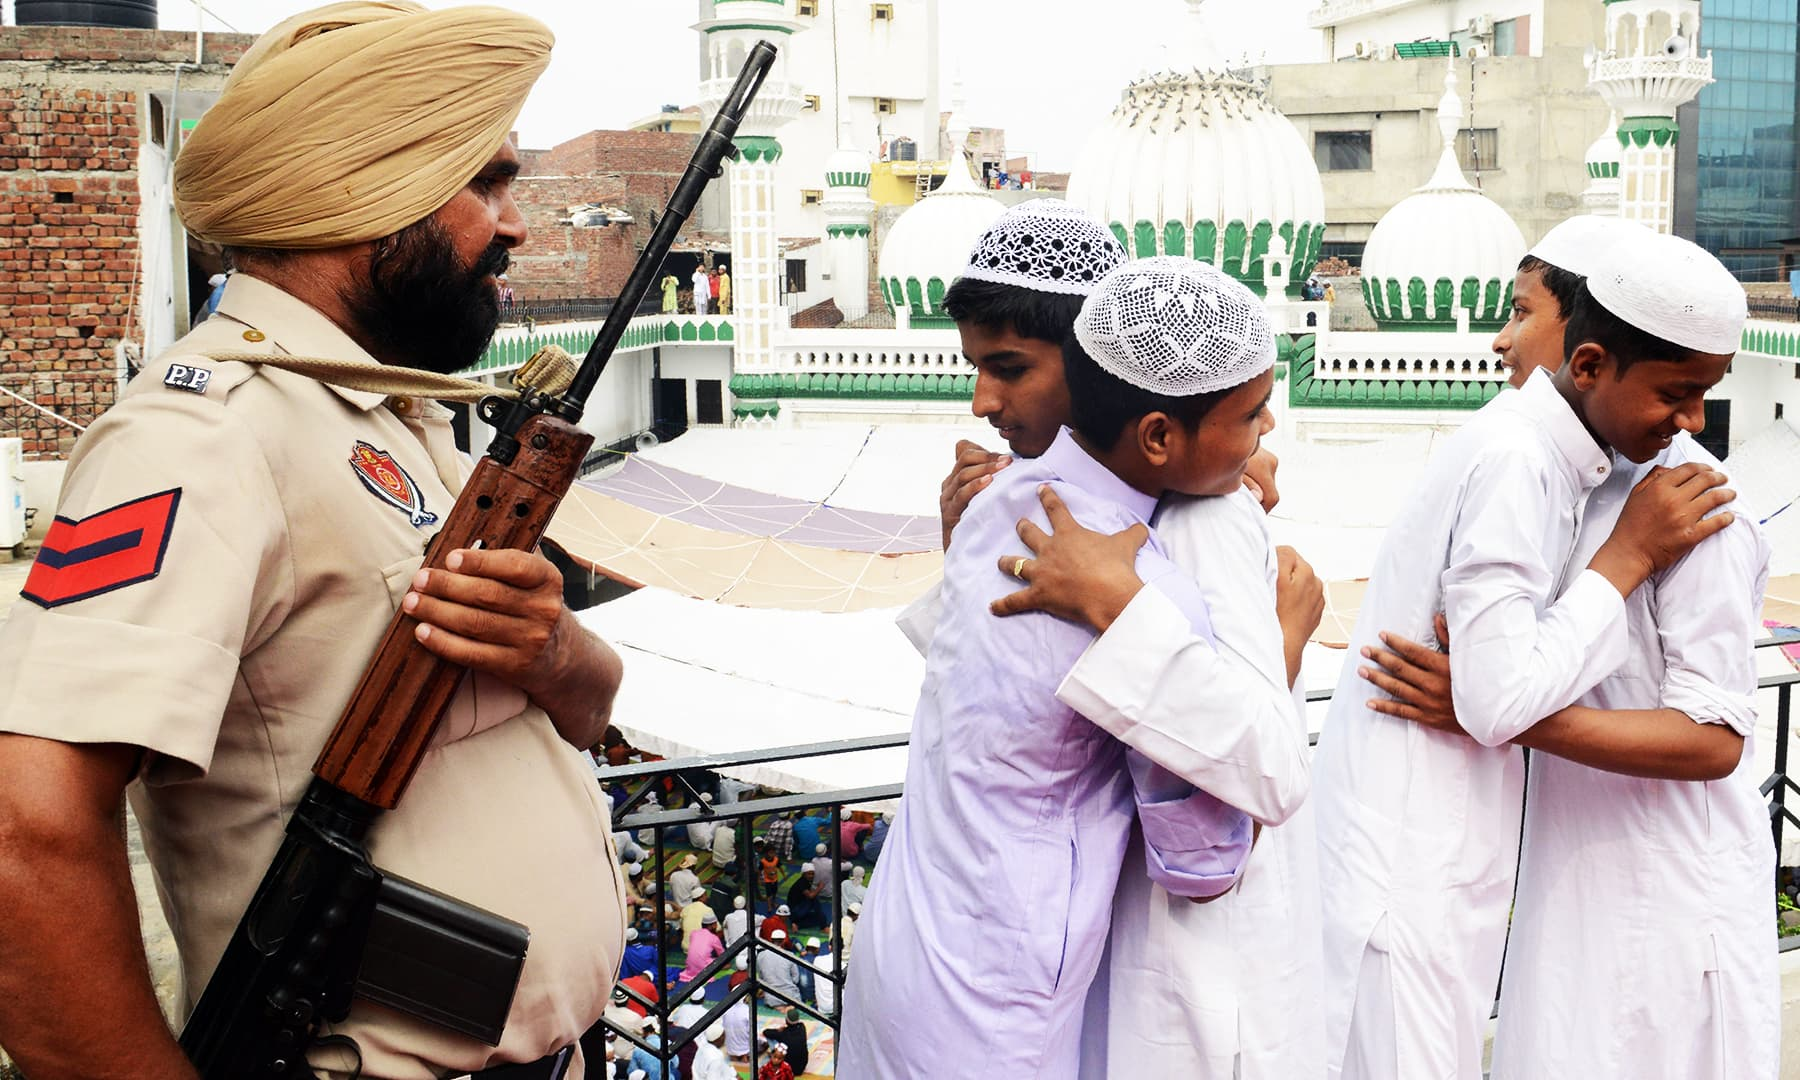 An Indian policeman watches young Muslims greet each other after prayers at the Khairuddin Mosque in Amritsar AFP